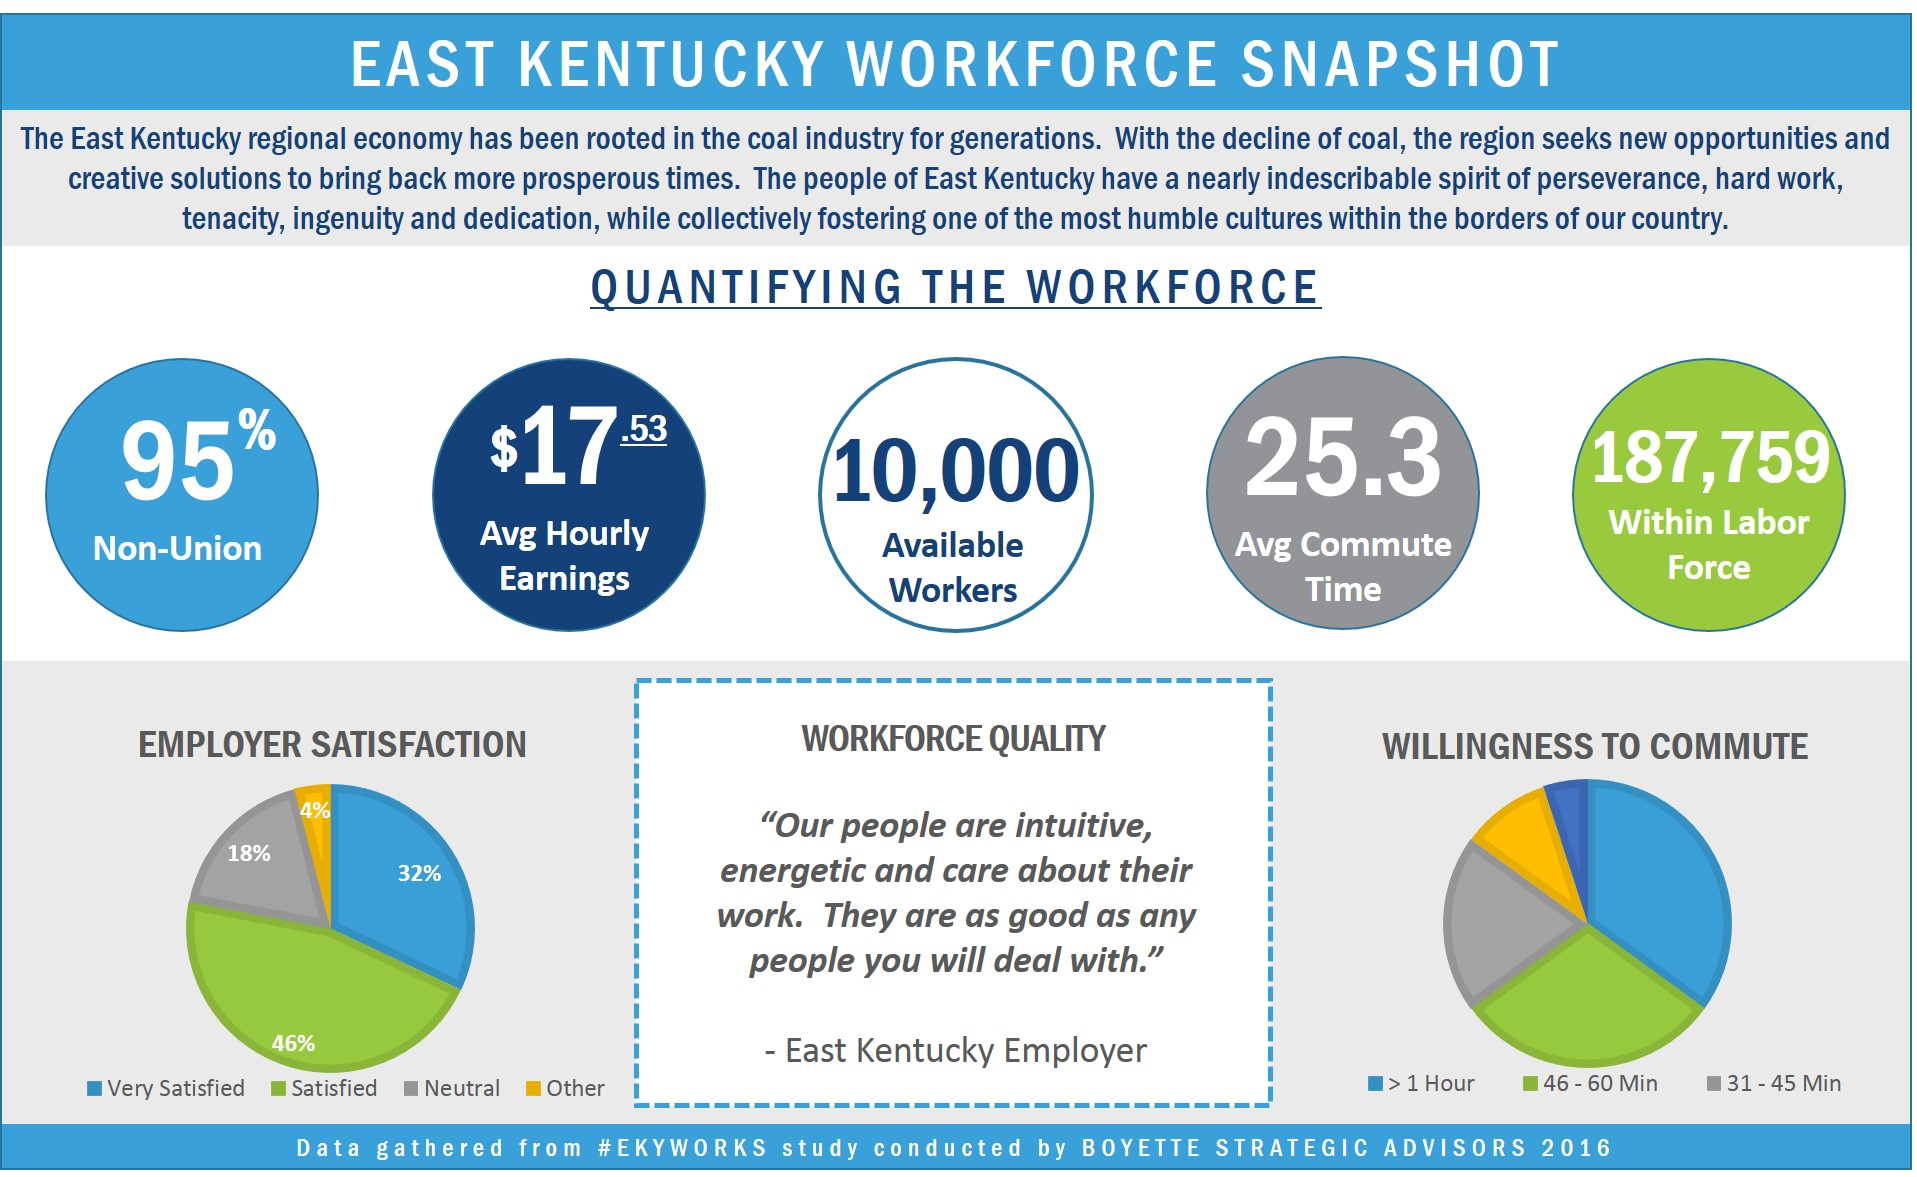 East Kentucky Workforce Snapshot